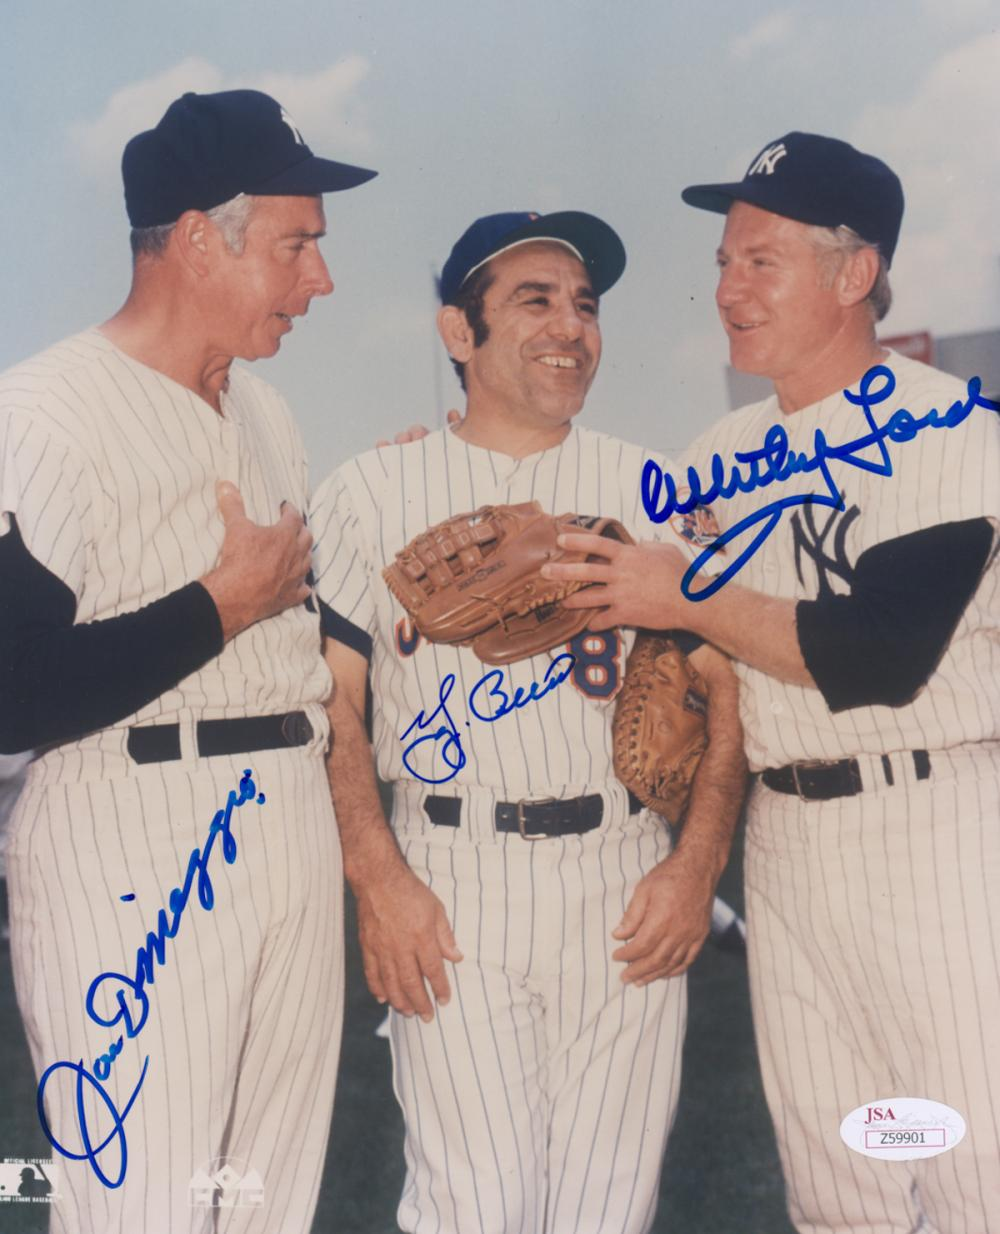 New York Yankees Multi-Signed Color Photo JSA LOA